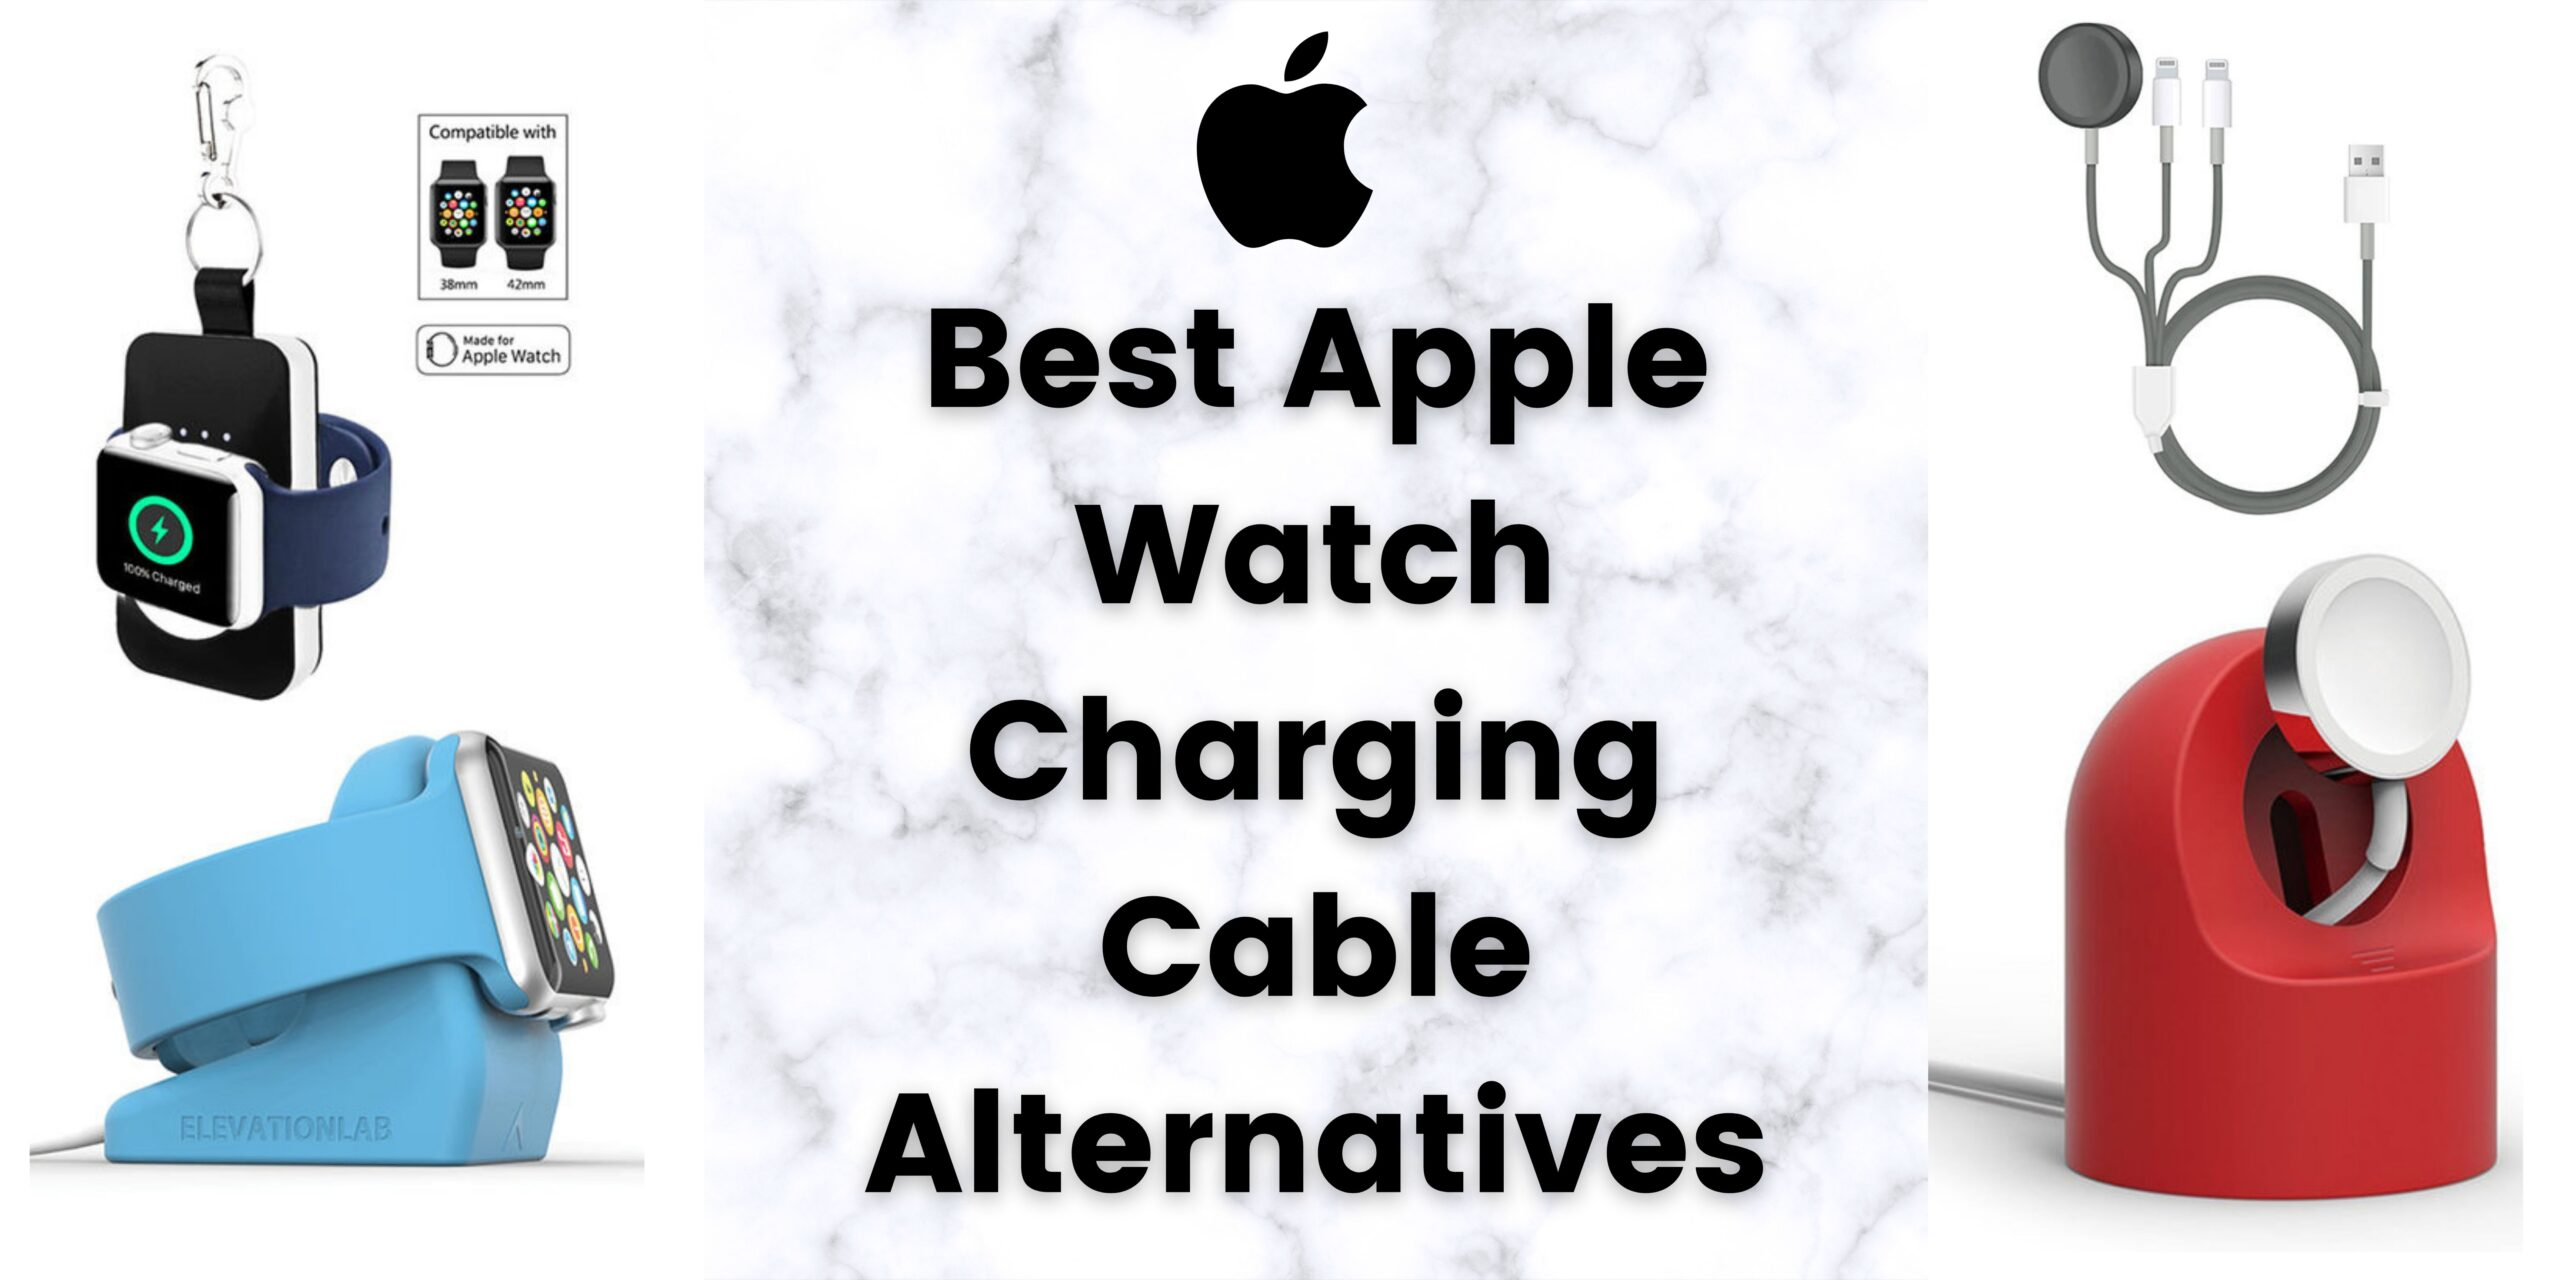 5 Best Apple Watch Charging Cable Alternatives